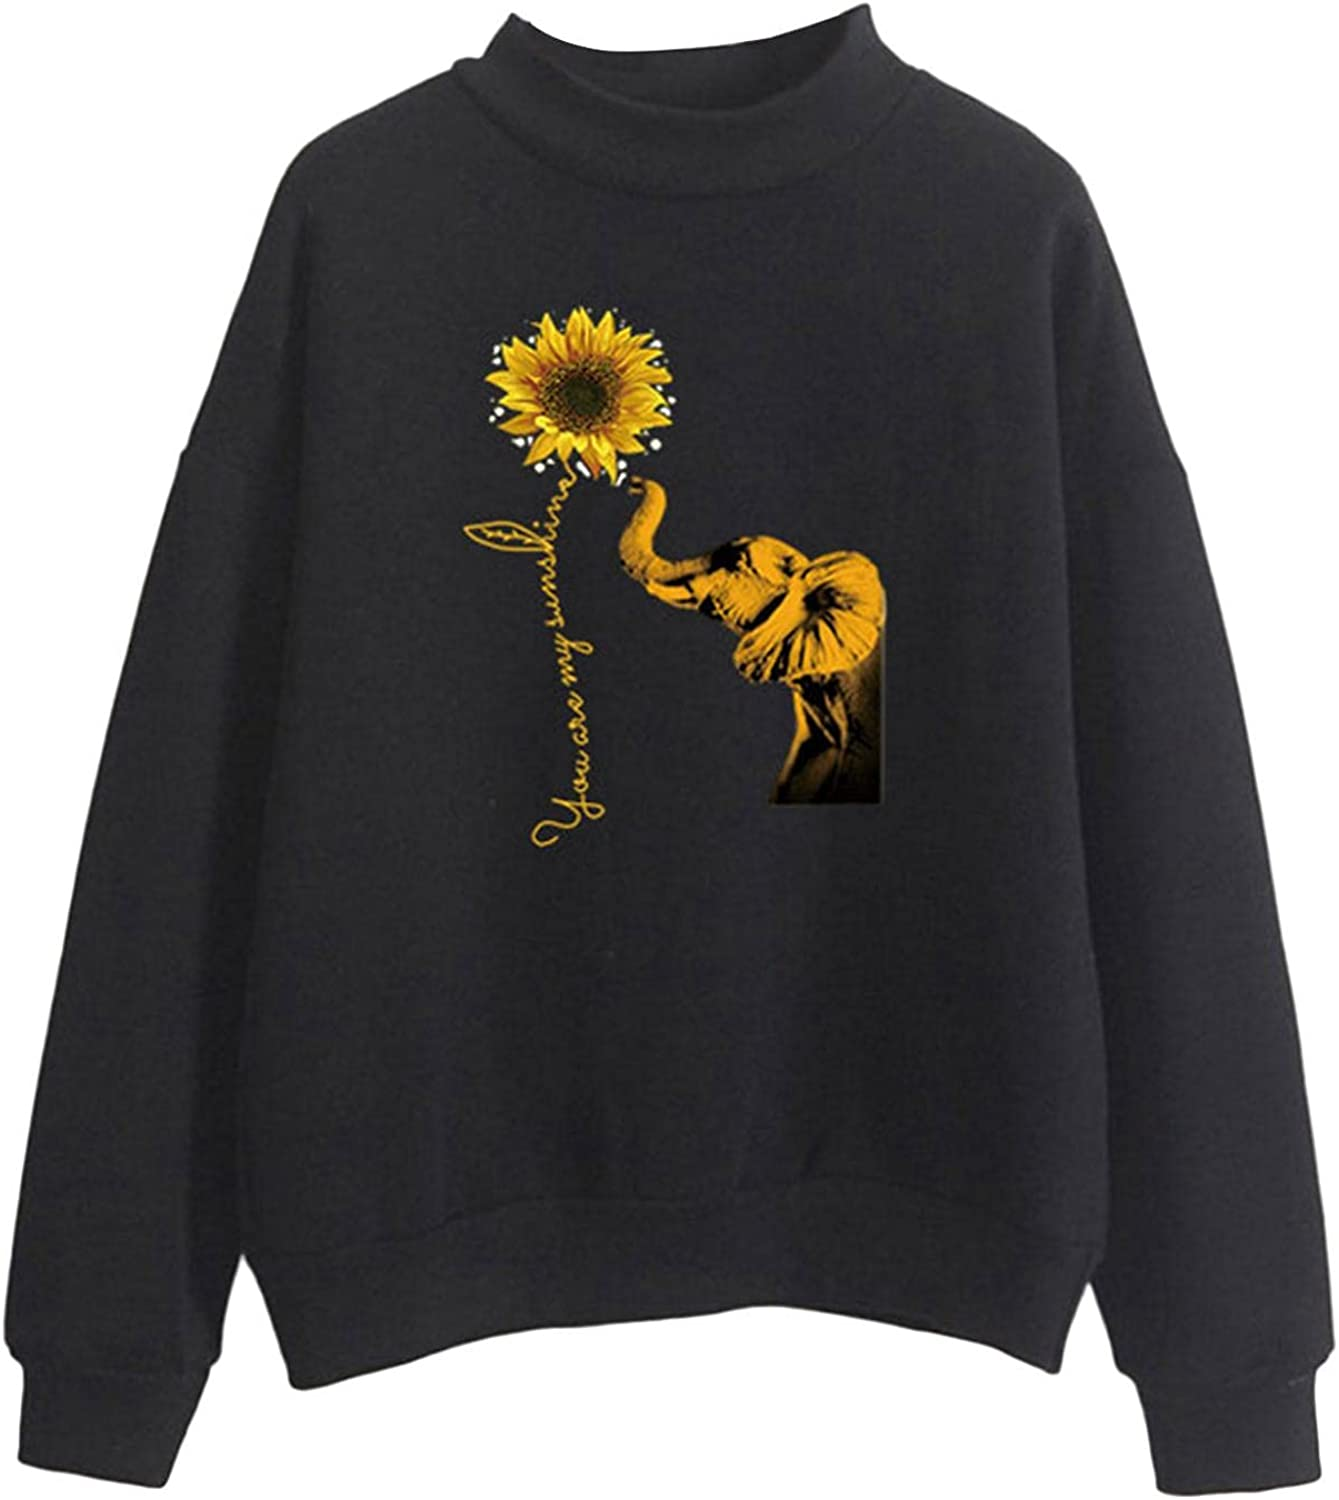 Toeava Sweatshirts for Women, Women's Autumn Casual Flower Print Turtleneck Tops Blouse Long Sleeve Loose Fit Pullover